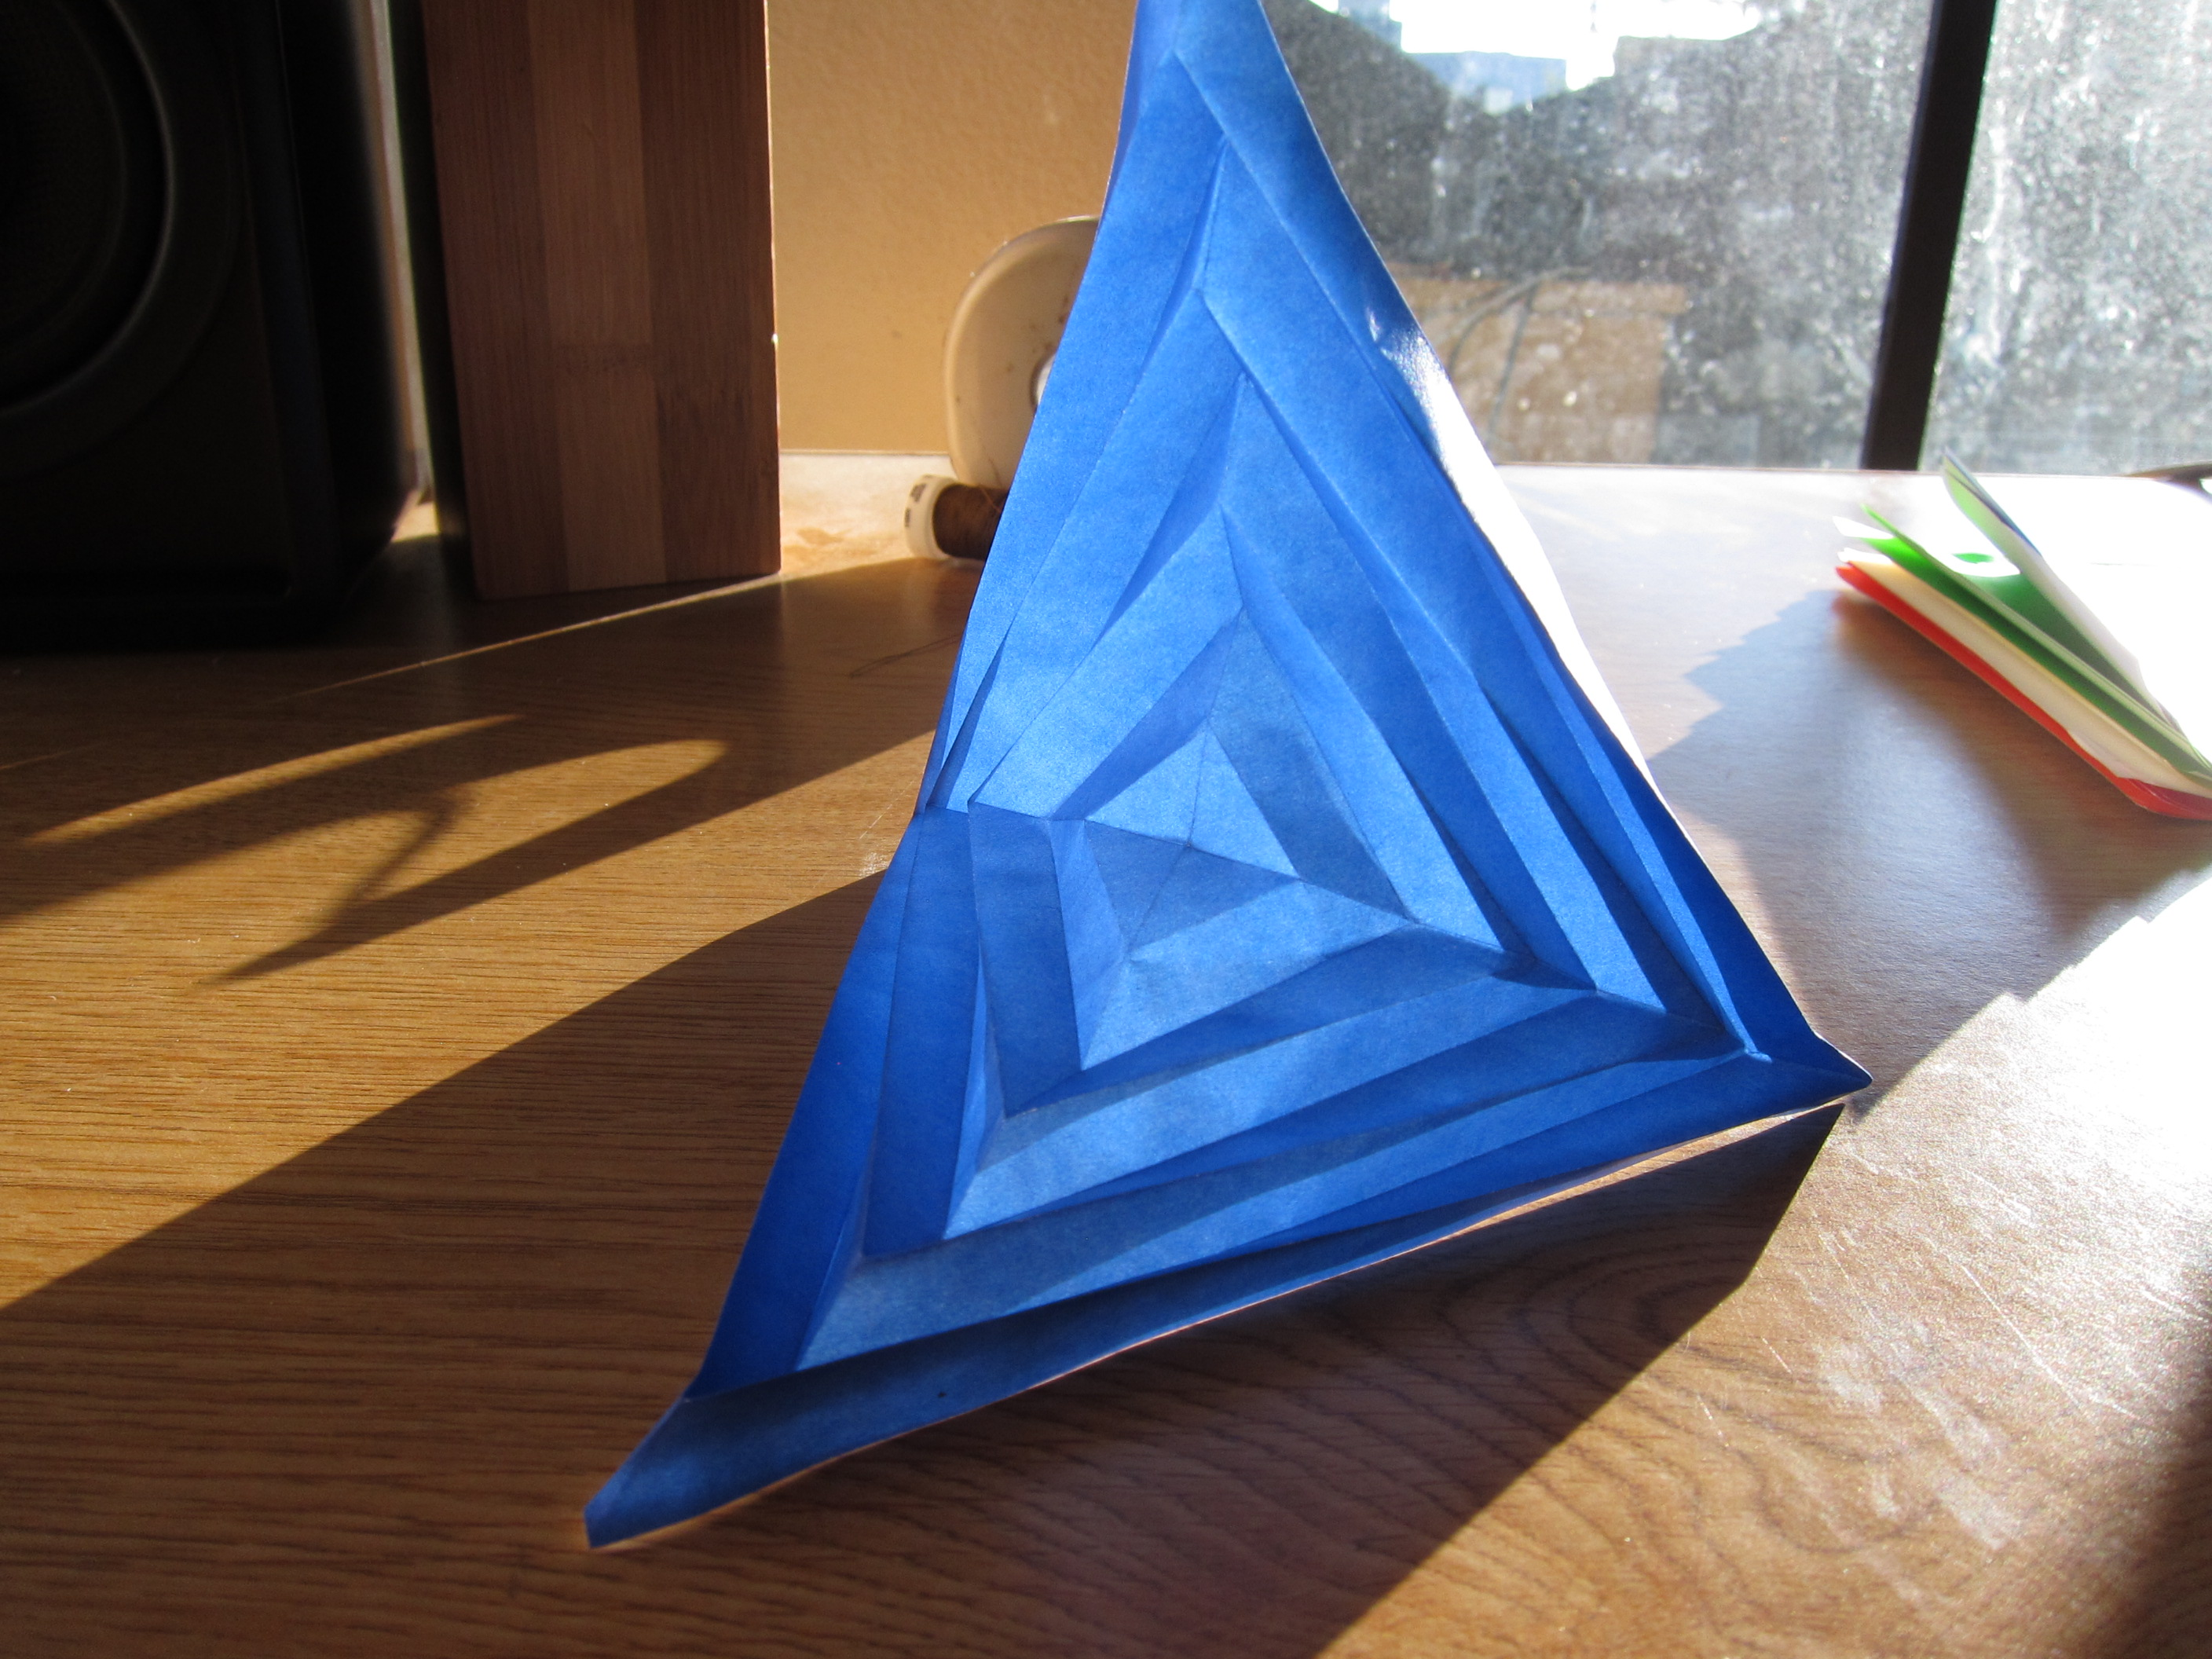 """Picture of Paper """"Cube"""" Made of Hyperbolic Paraboloids - Modular Math Origami"""